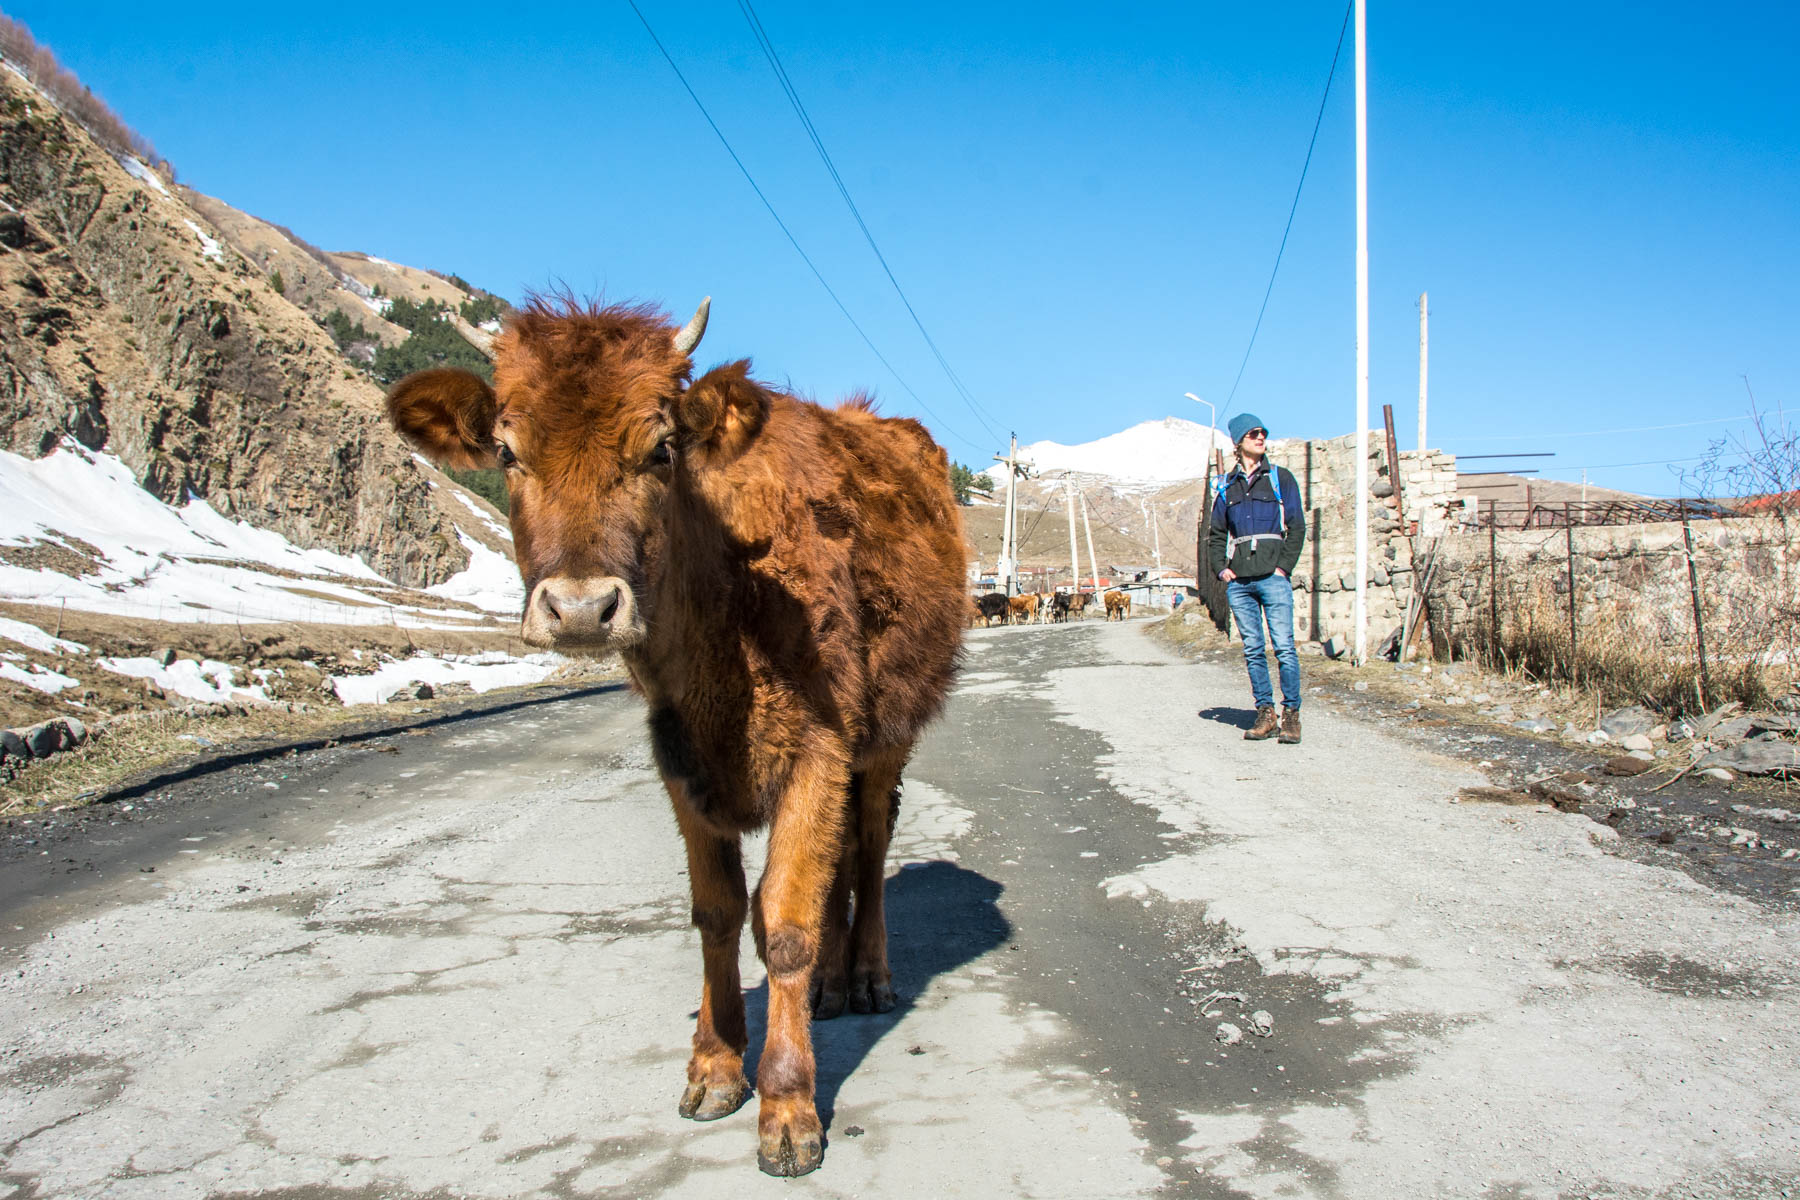 Cow on the streets of Kazbegi near Gergeti in Georgia